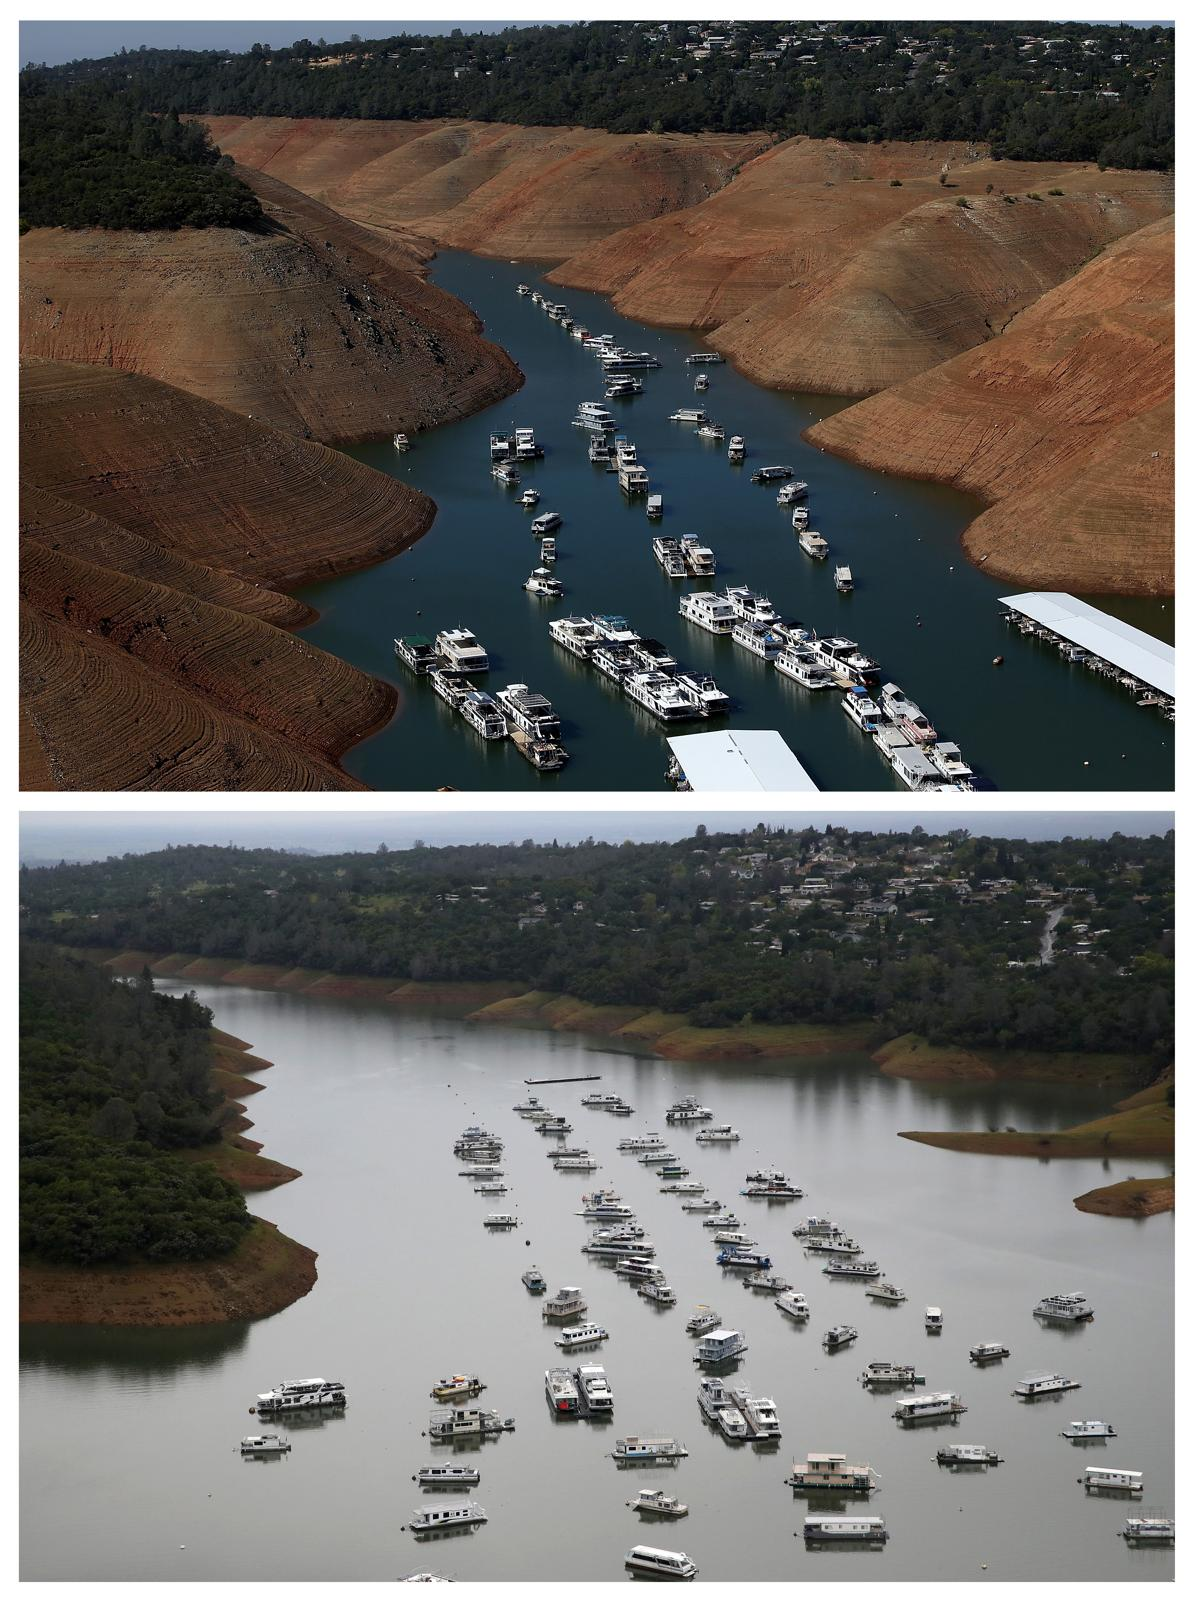 California drought: then and now - The Boston Globe